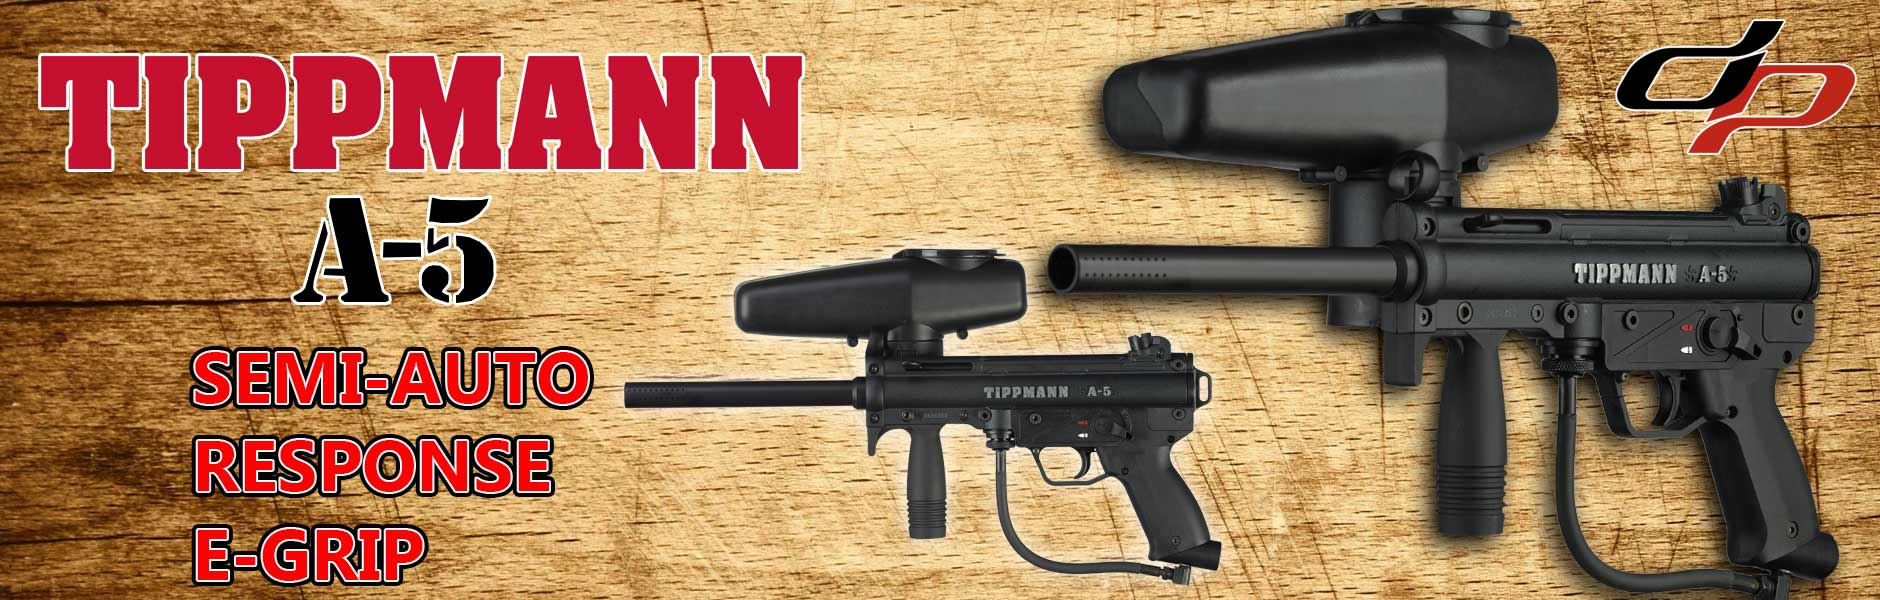 The Tippmann A5 Comes With A Stylish And Cleaner Look It Also Cyclone Feeding System Paintball Gun Is Great For Beginner Or An